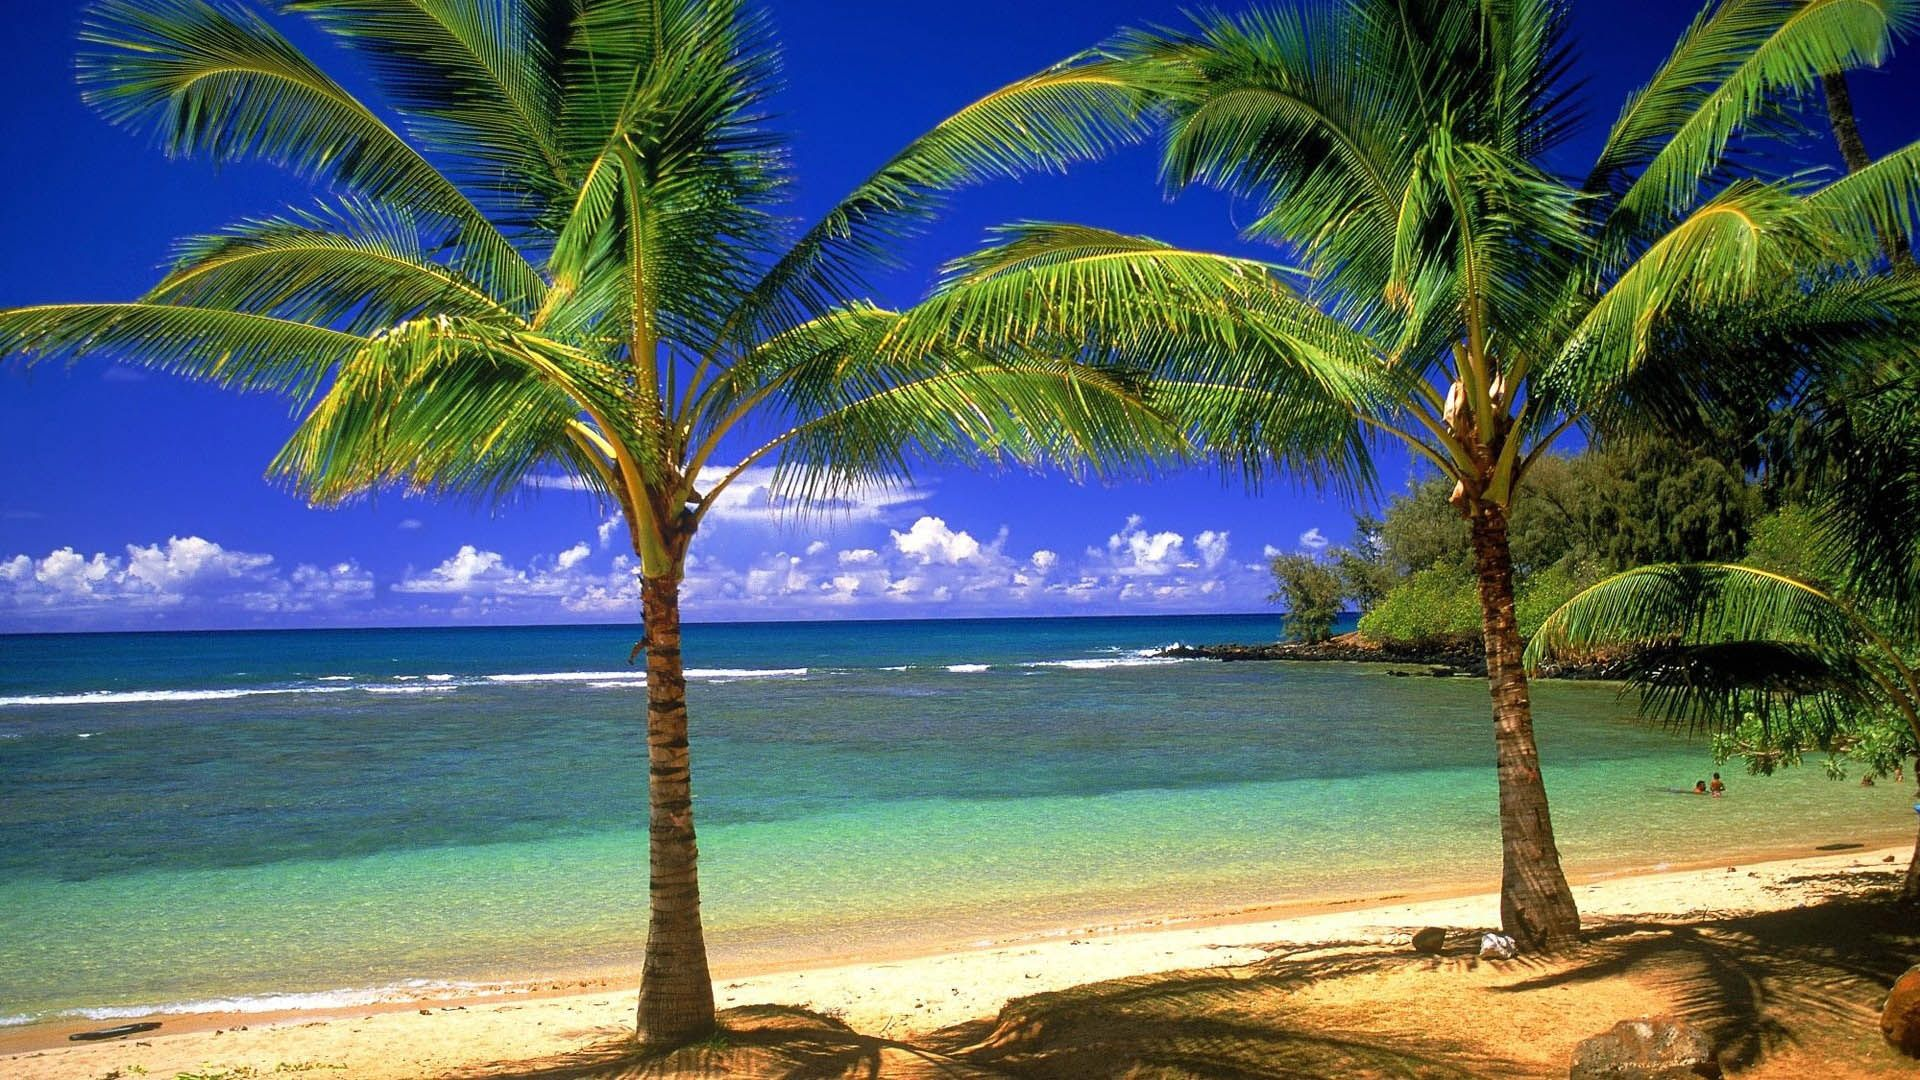 Palm Tree Types And 16 Photos | Palm tree types and Travel pics